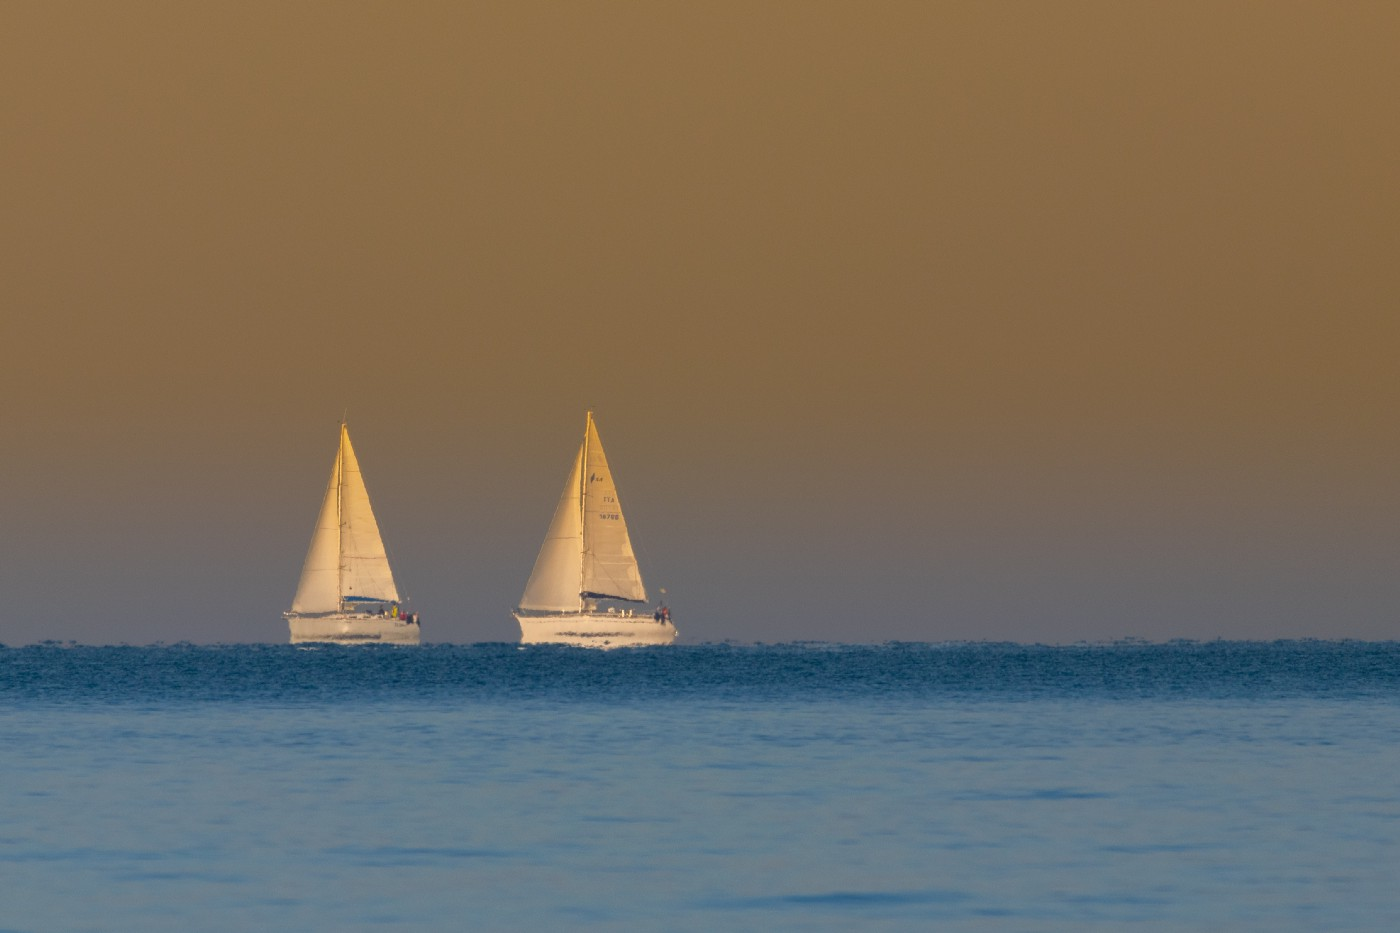 Two sailboats on the horizon of the sea.